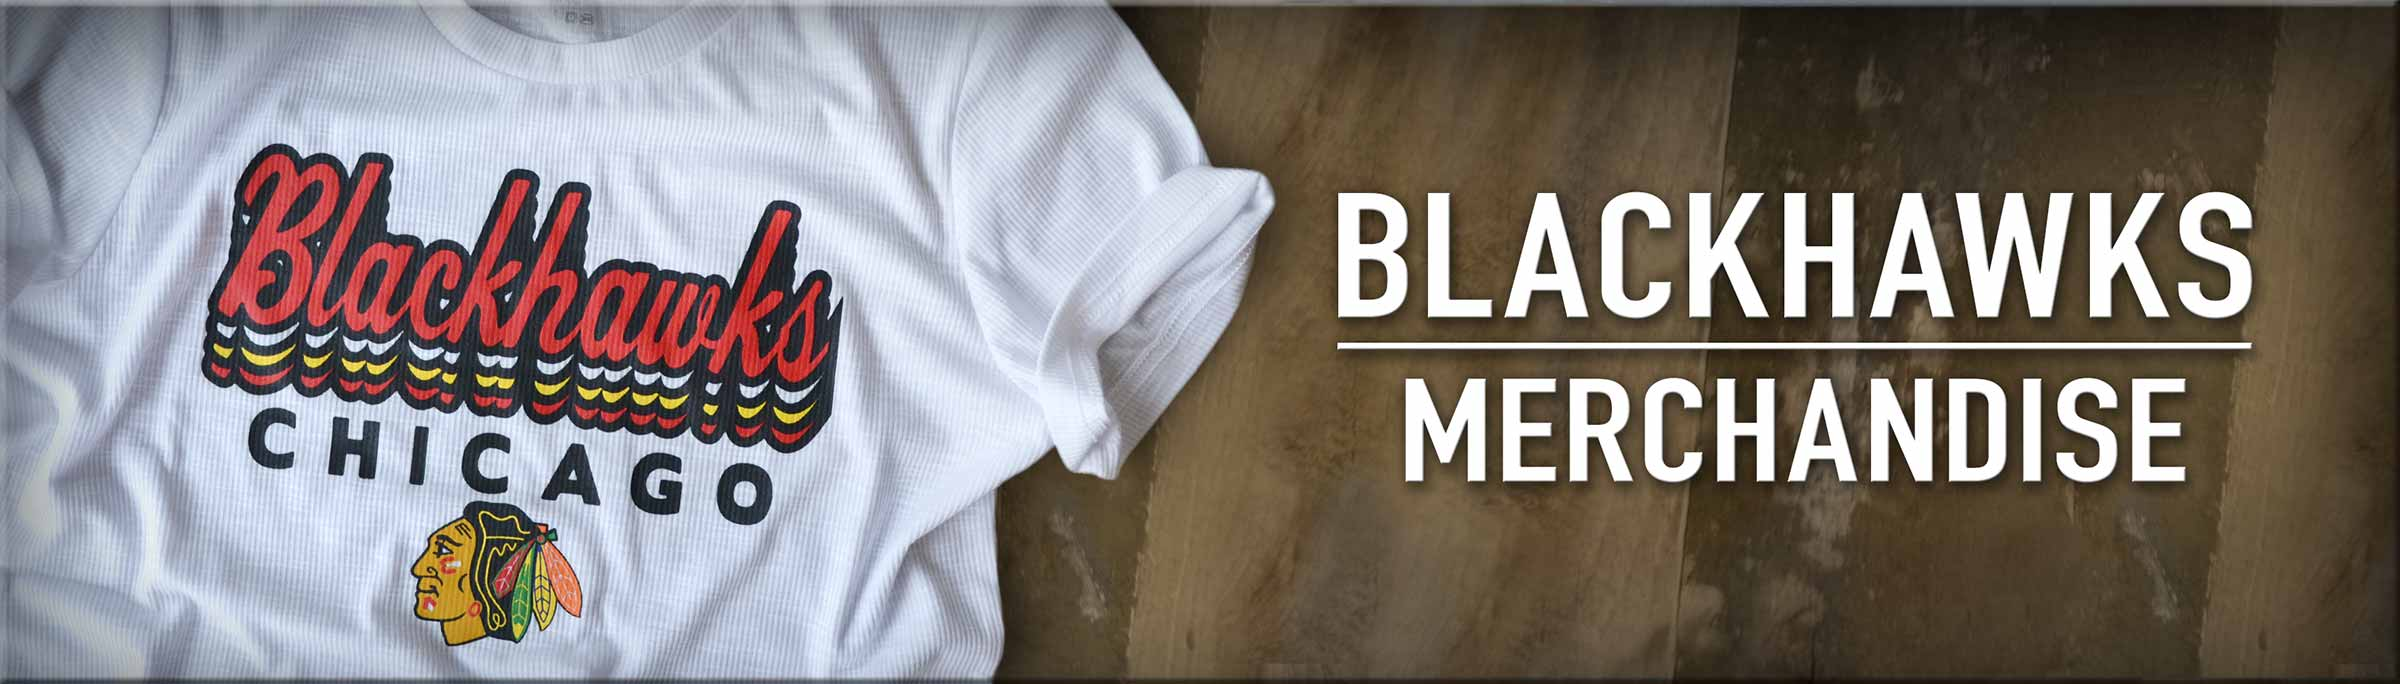 Shop Chicago Blackhawks Merchandise, including this Chicago Blackhawks Ladies Java Tank Top.